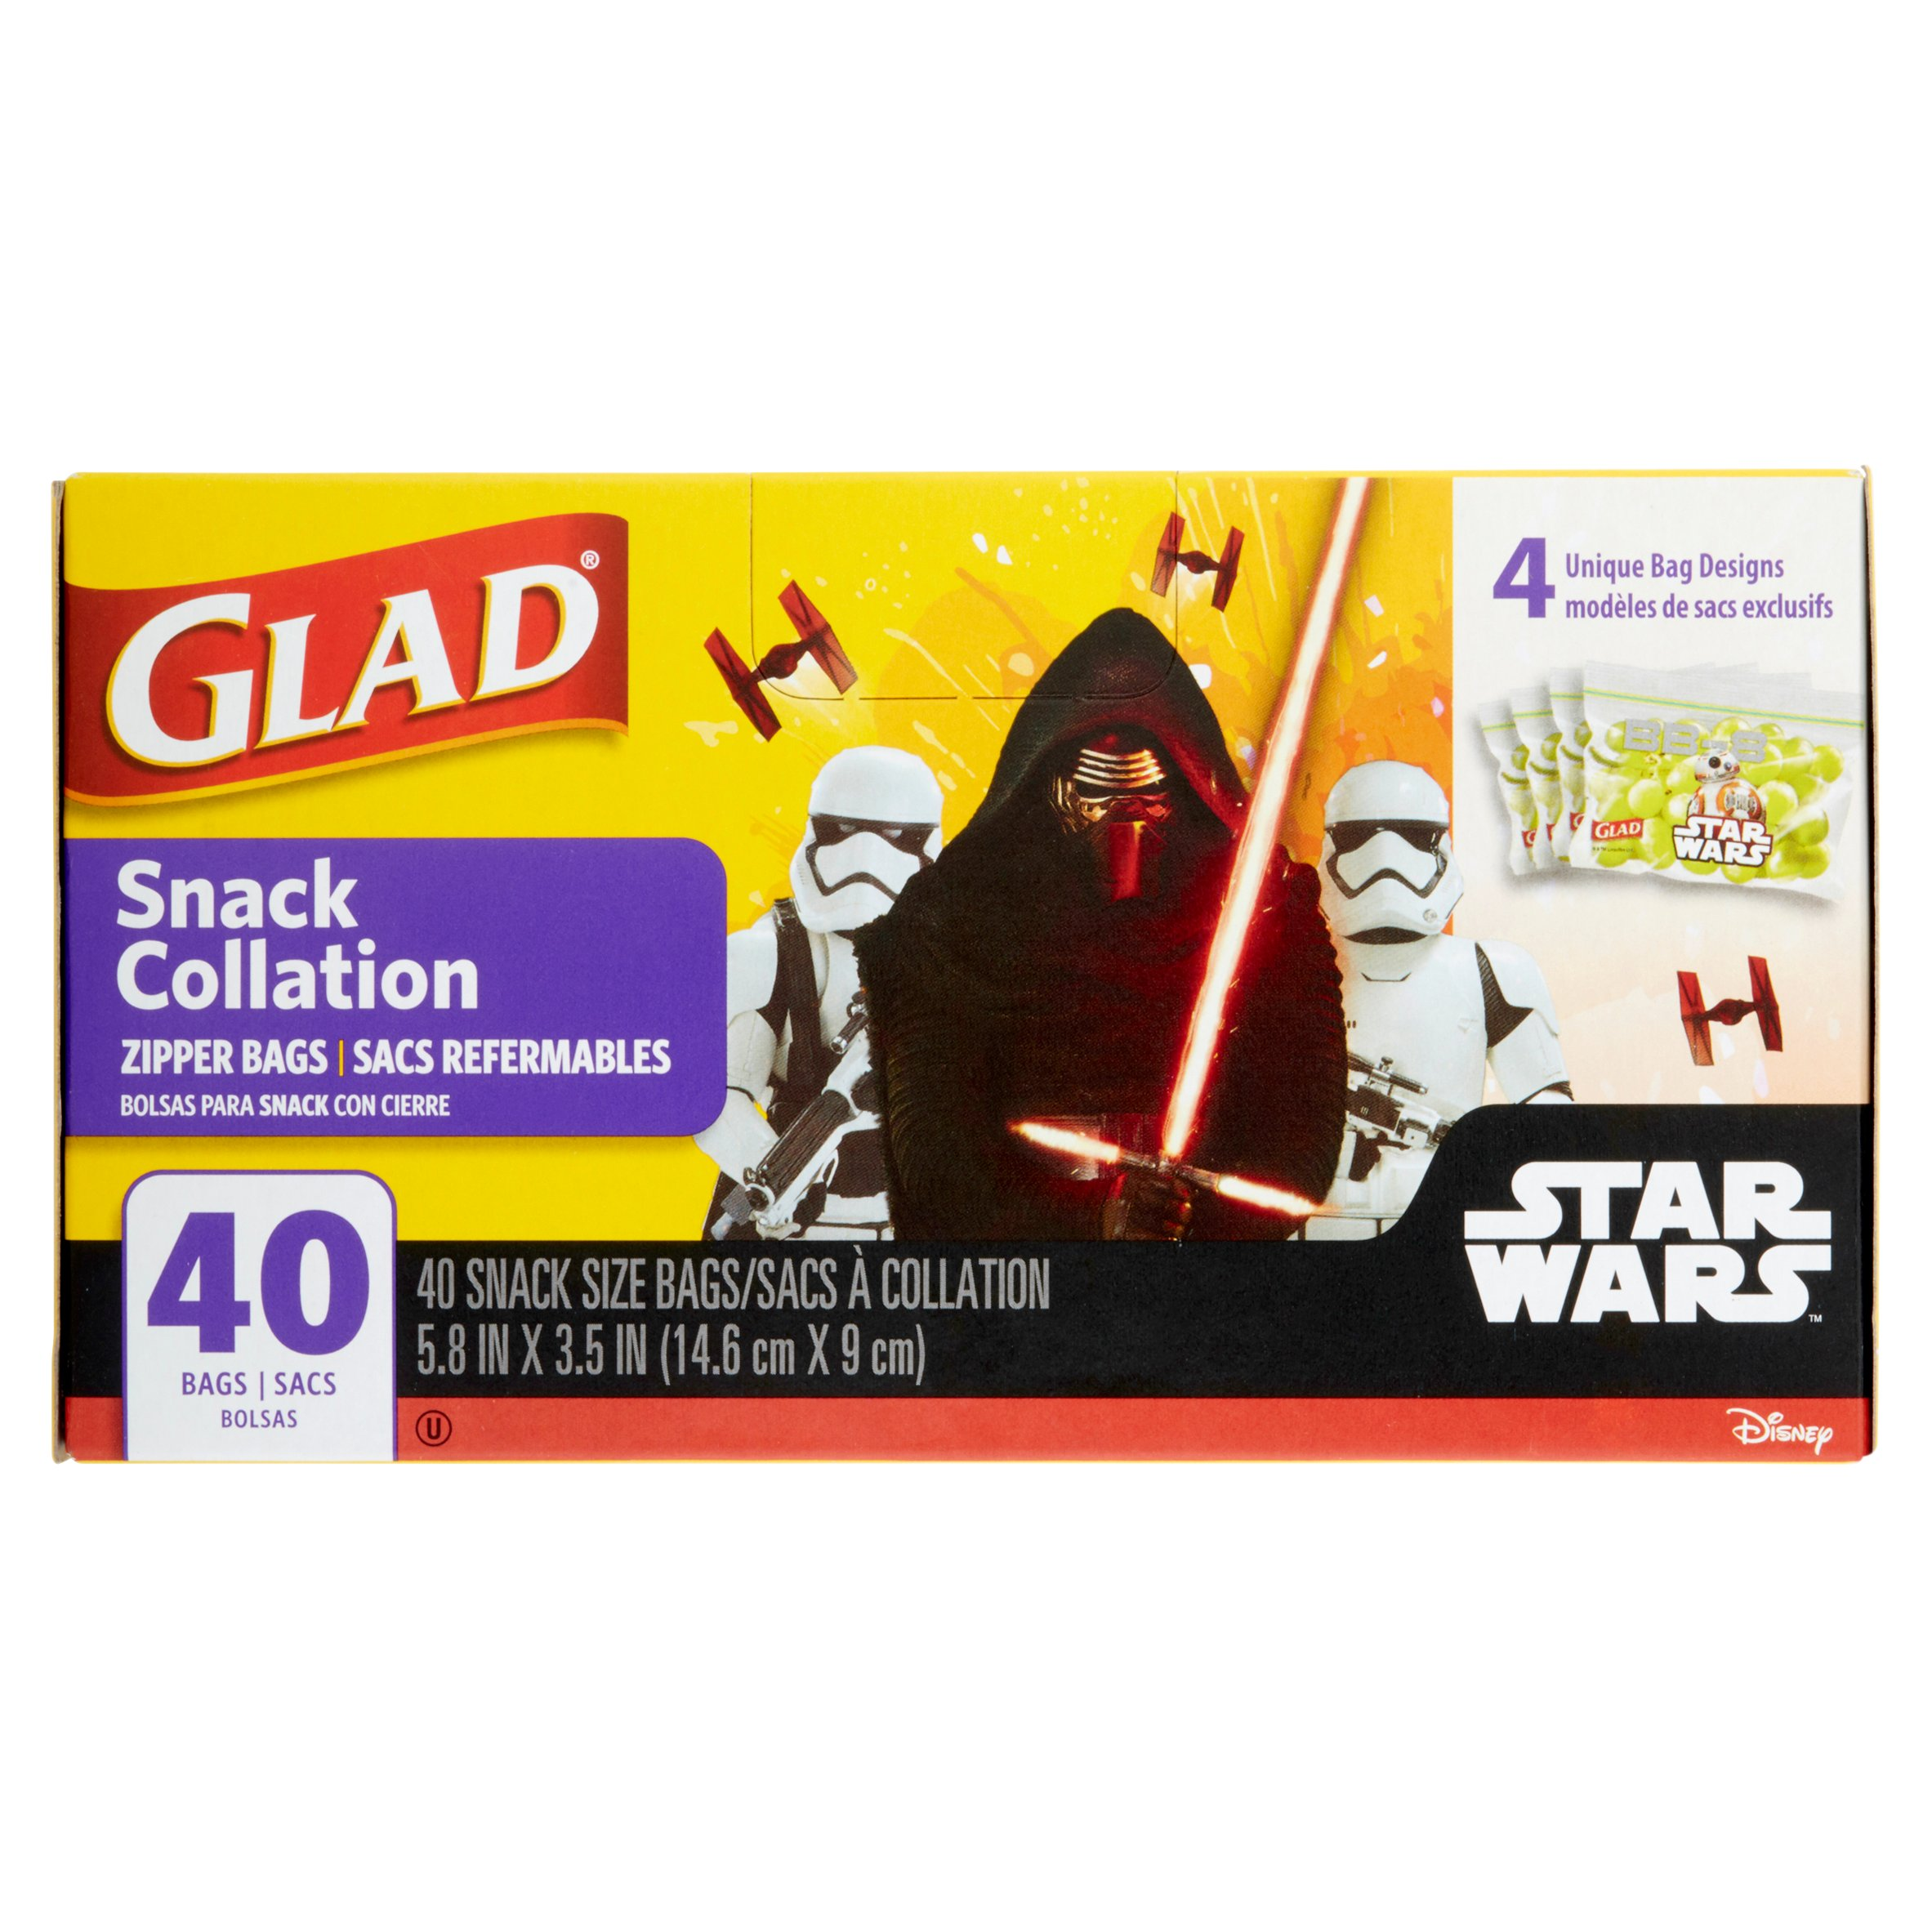 Glad Star Wars Pinch & Seal Zipper Snack Bags, 40 Ct